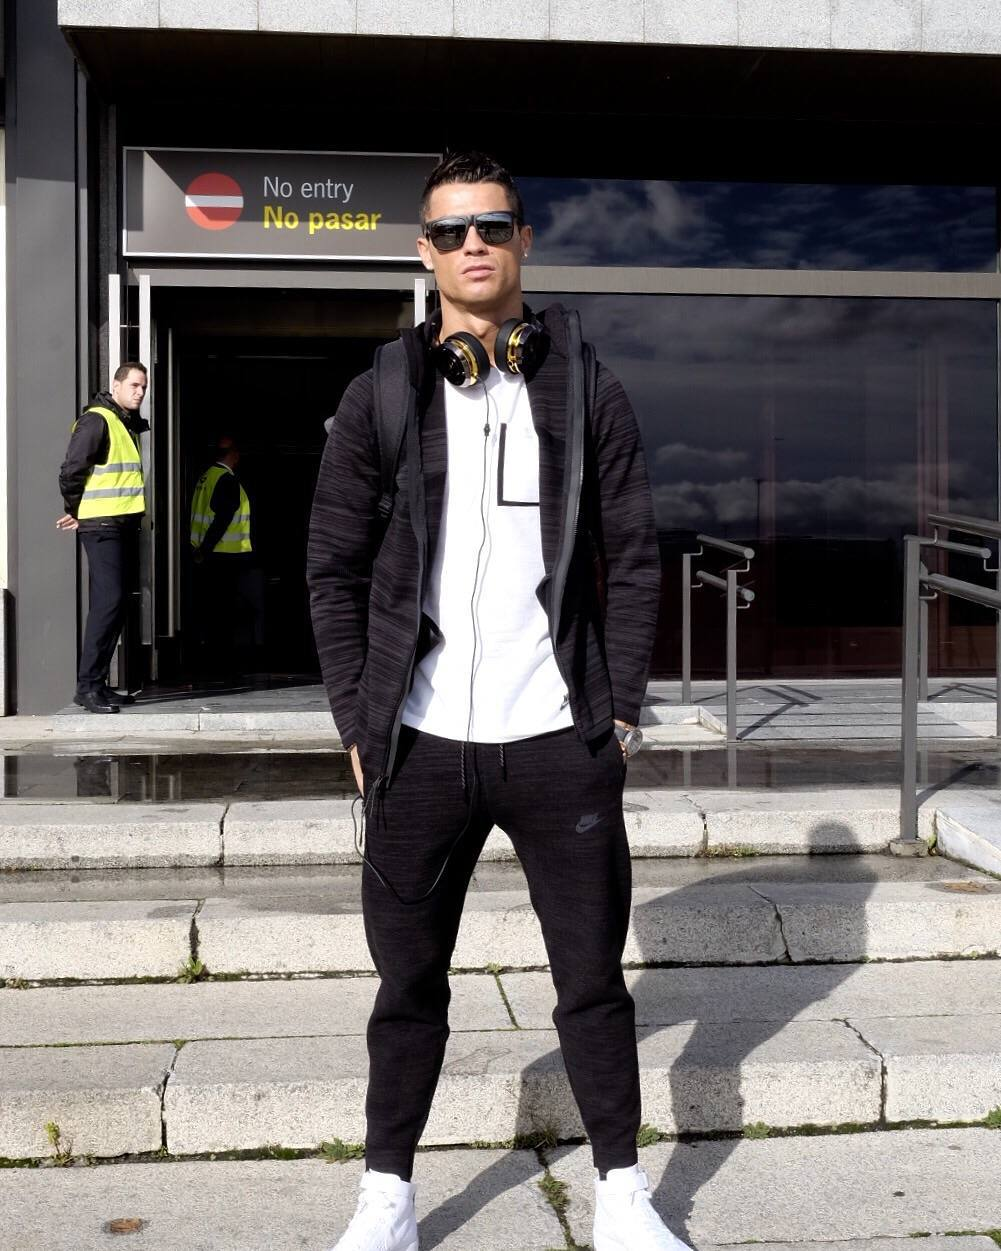 fbba35602a1 Cristiano Ronaldo Instagram  Going to Zurich for the day ...